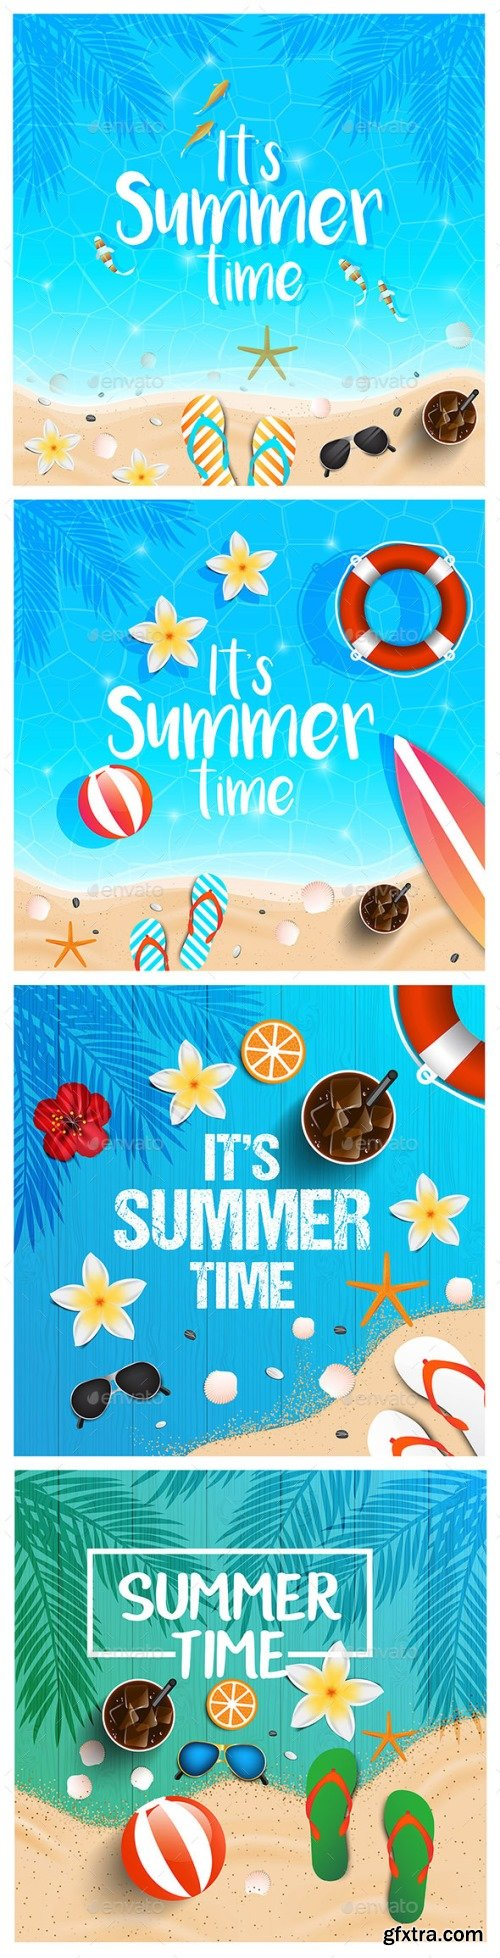 Graphicriver - Summer Time Background 22121123